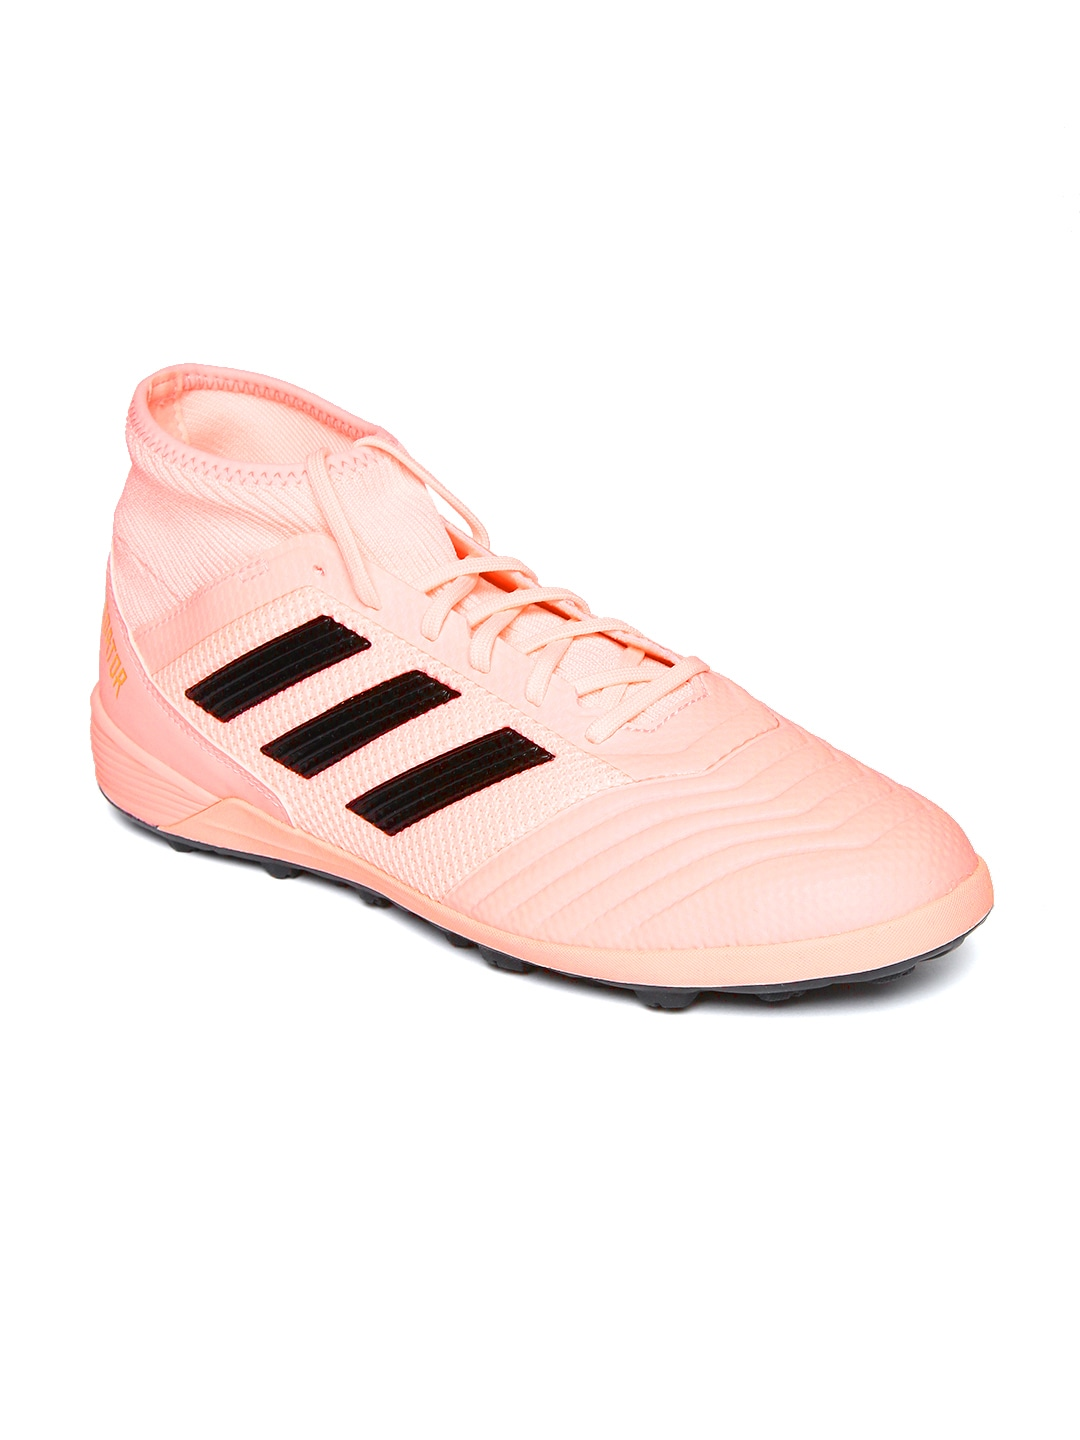 new style 04d97 f2938 Adidas Cheap Shoes - Buy Adidas Cheap Shoes online in India